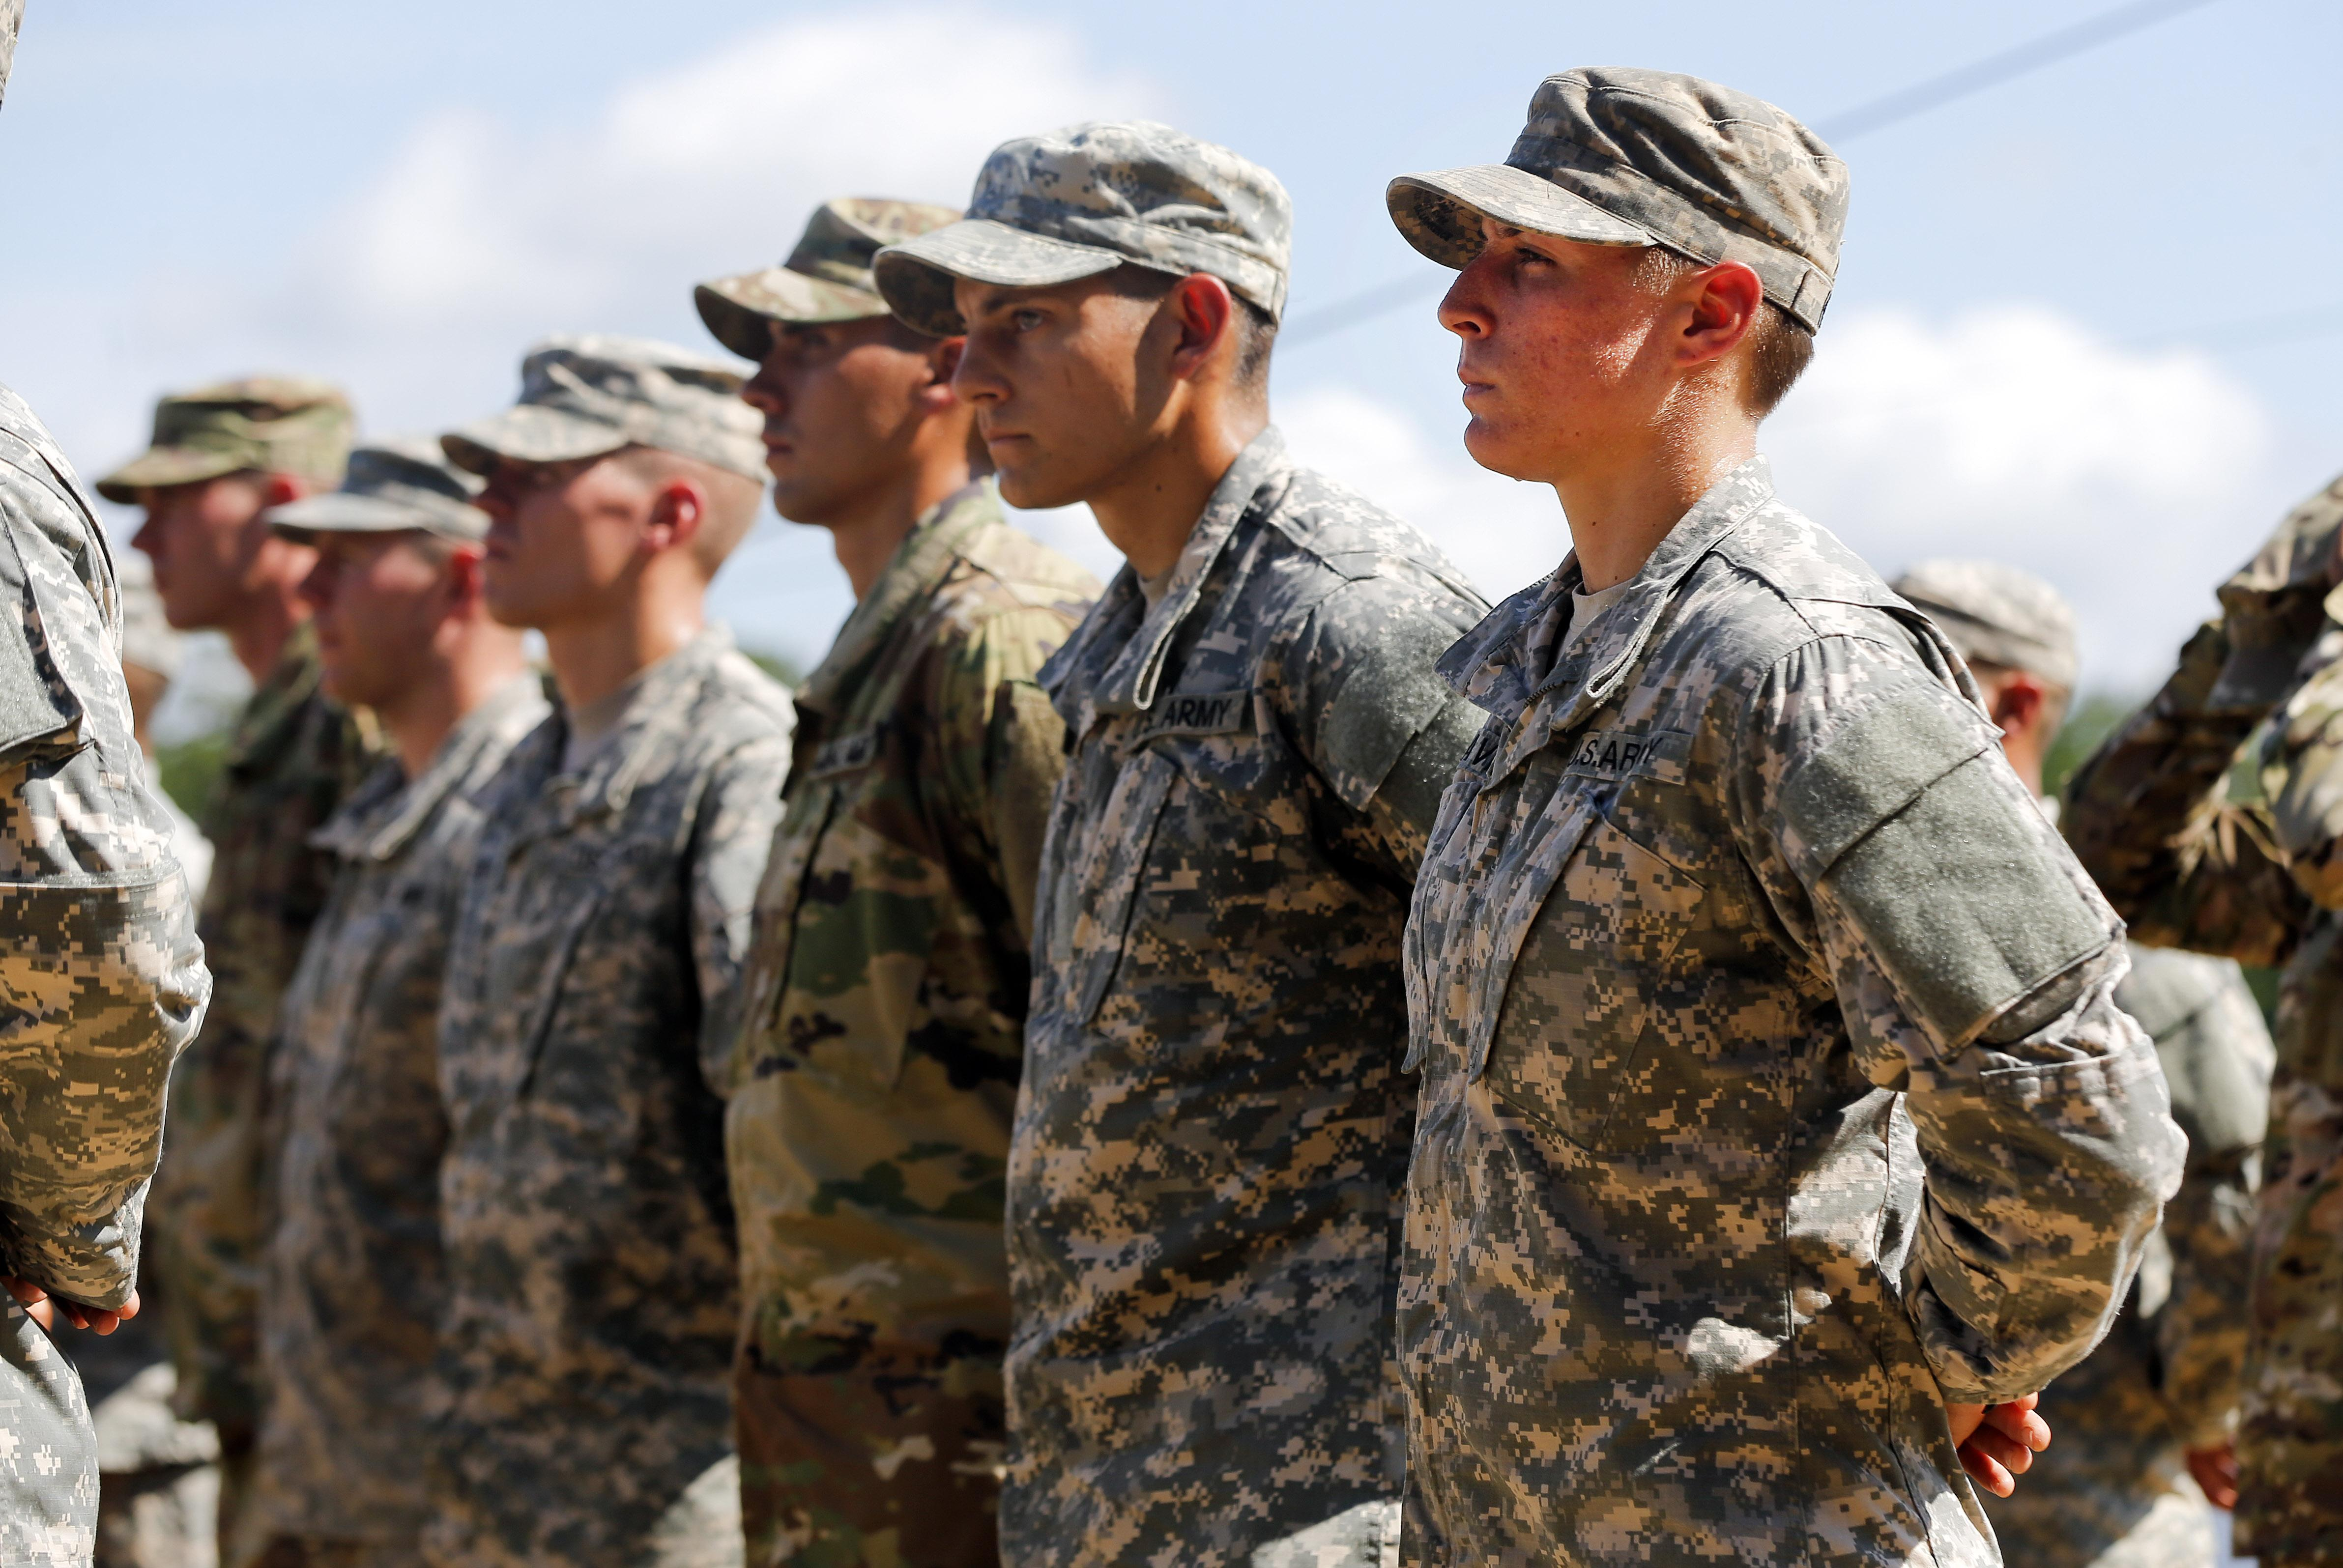 importance of formation in the military The second continental congress founded the army in 1775 it is the oldest service of the united states military originally formed to protect the freedom of the first 13 colonies, the army has.